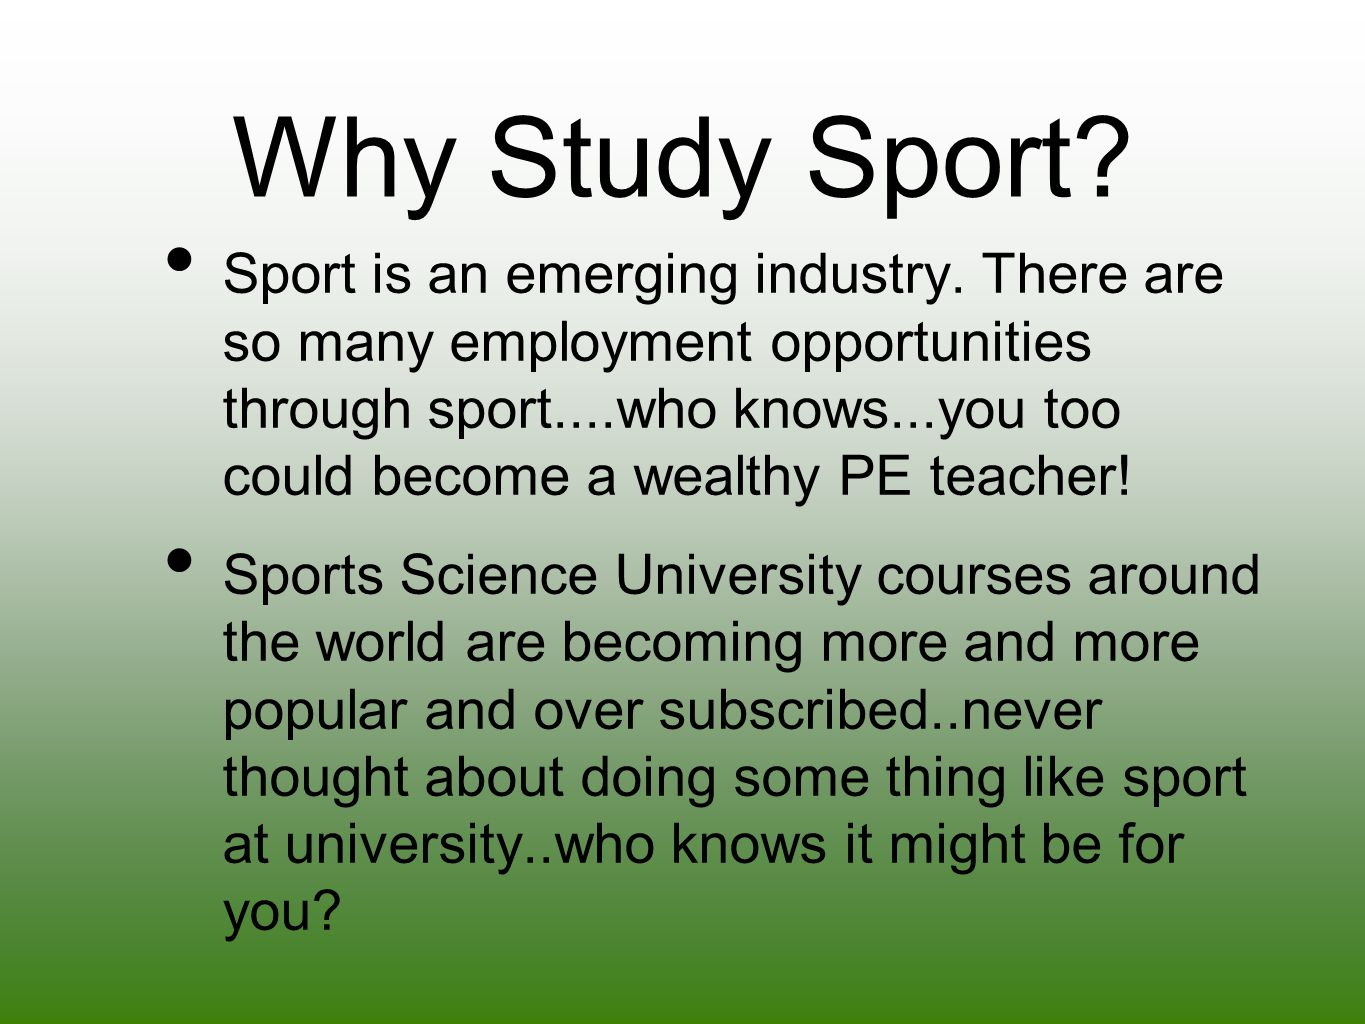 Why Study Sport? Sport is an emerging industry. There are so many employment opportunities through sport....who knows...you too could become a wealthy